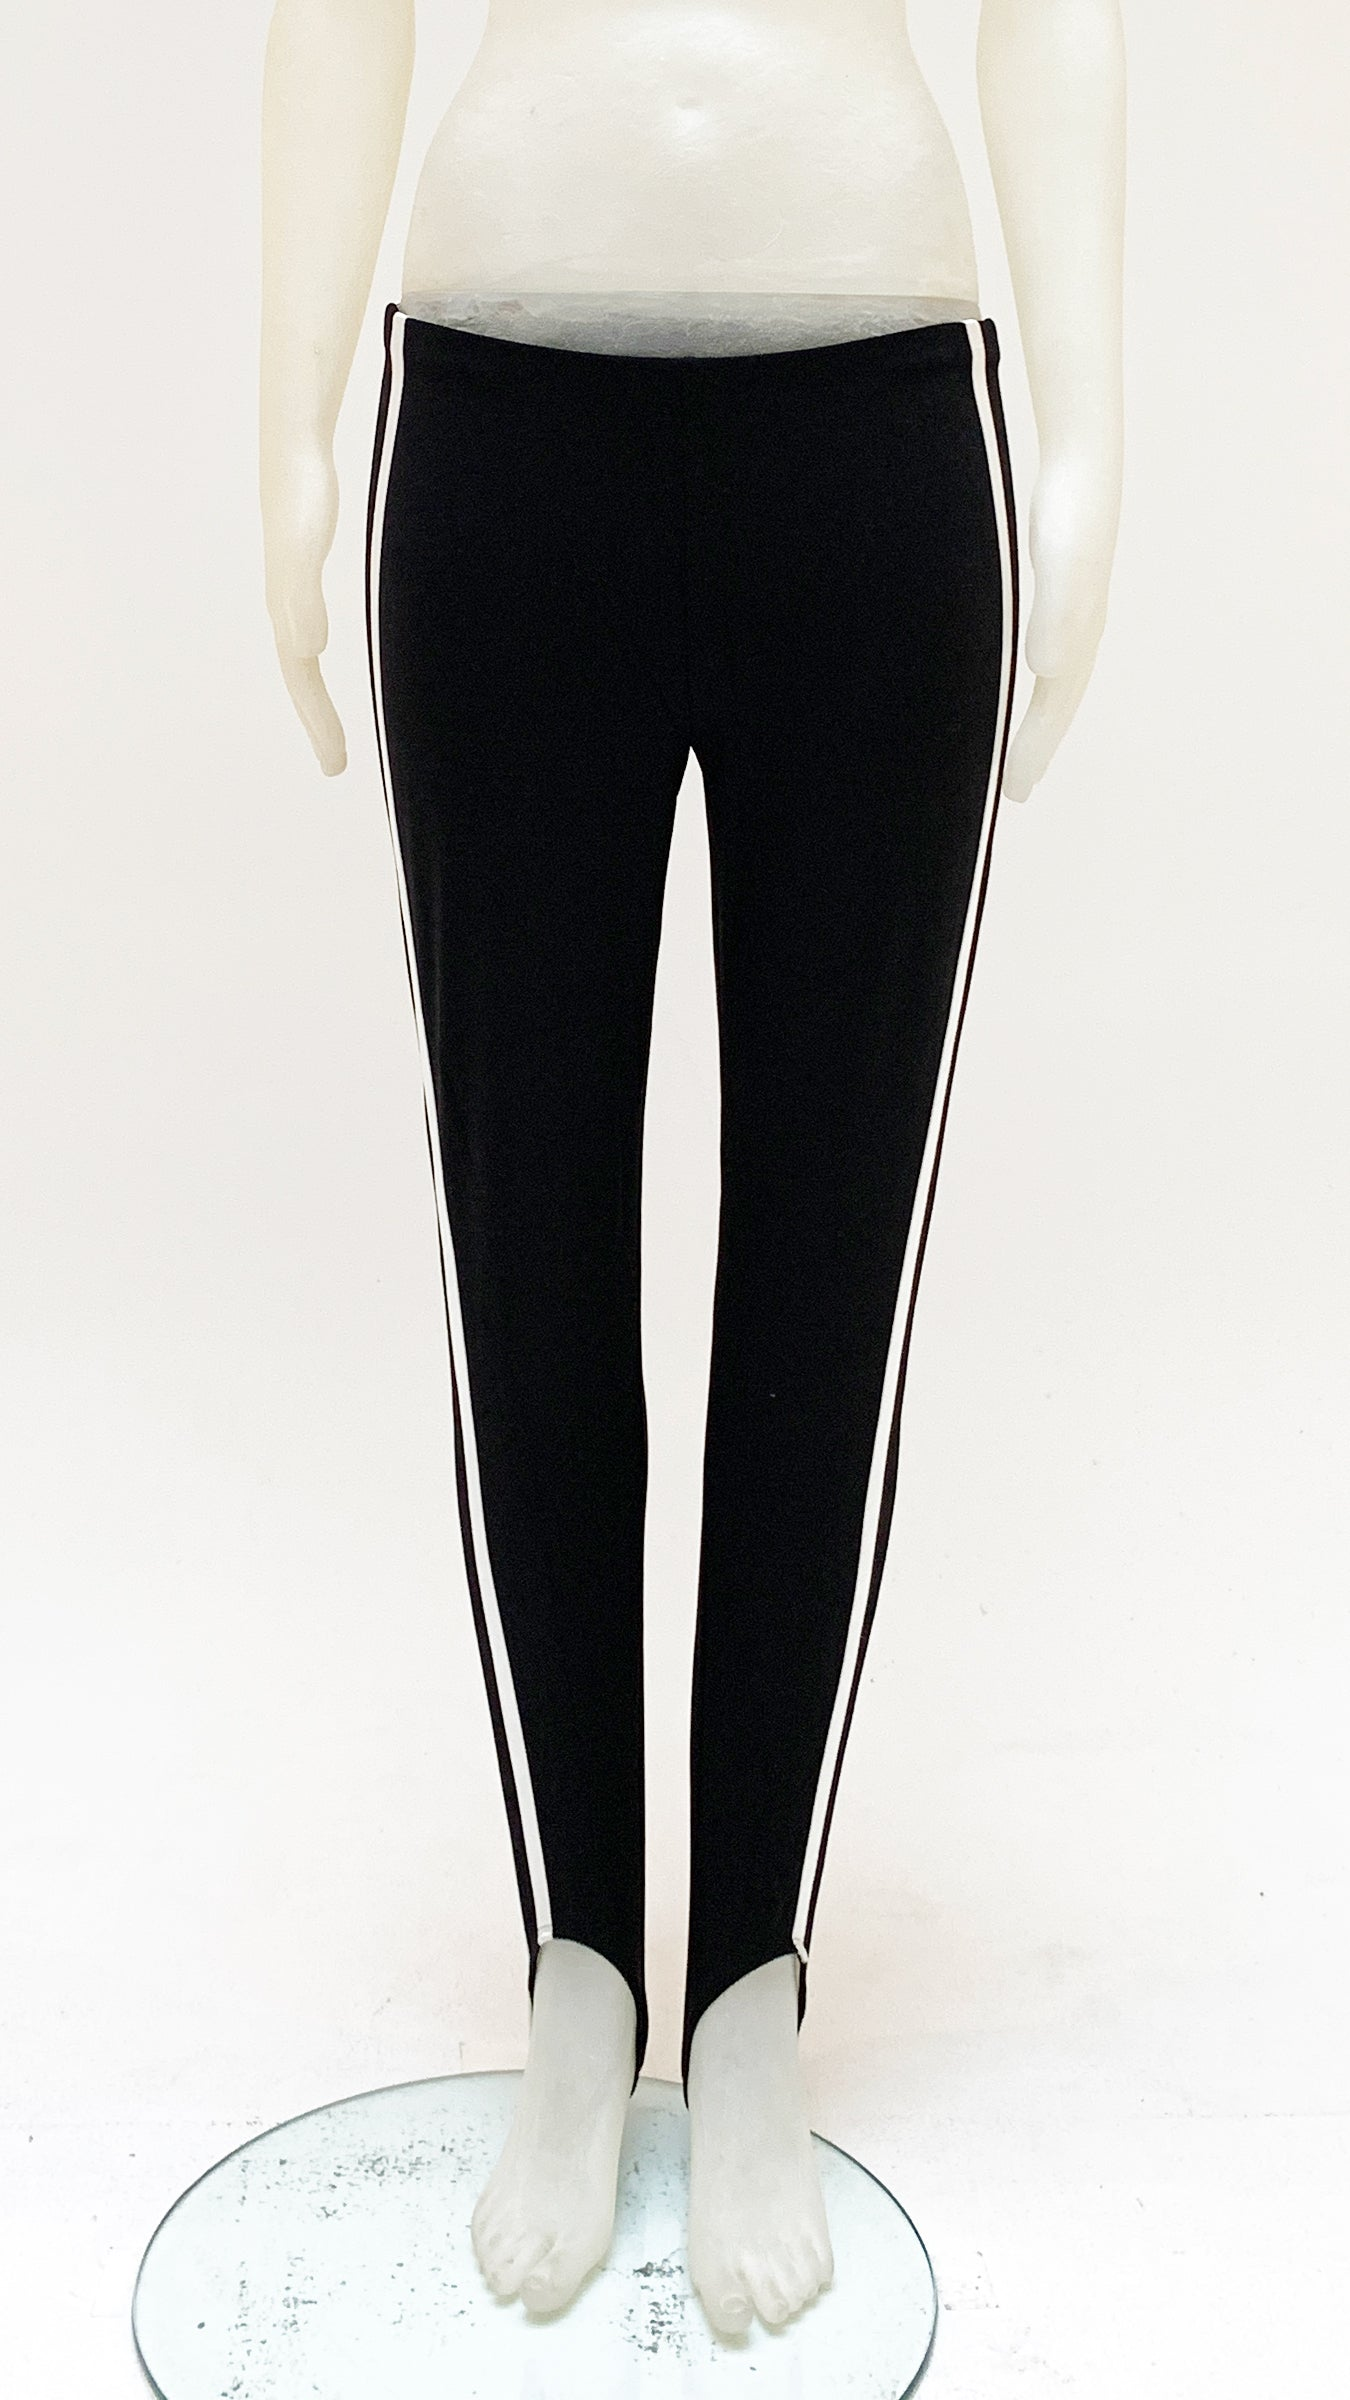 SIDE STRIPE STIRRUP LEGGING - 1